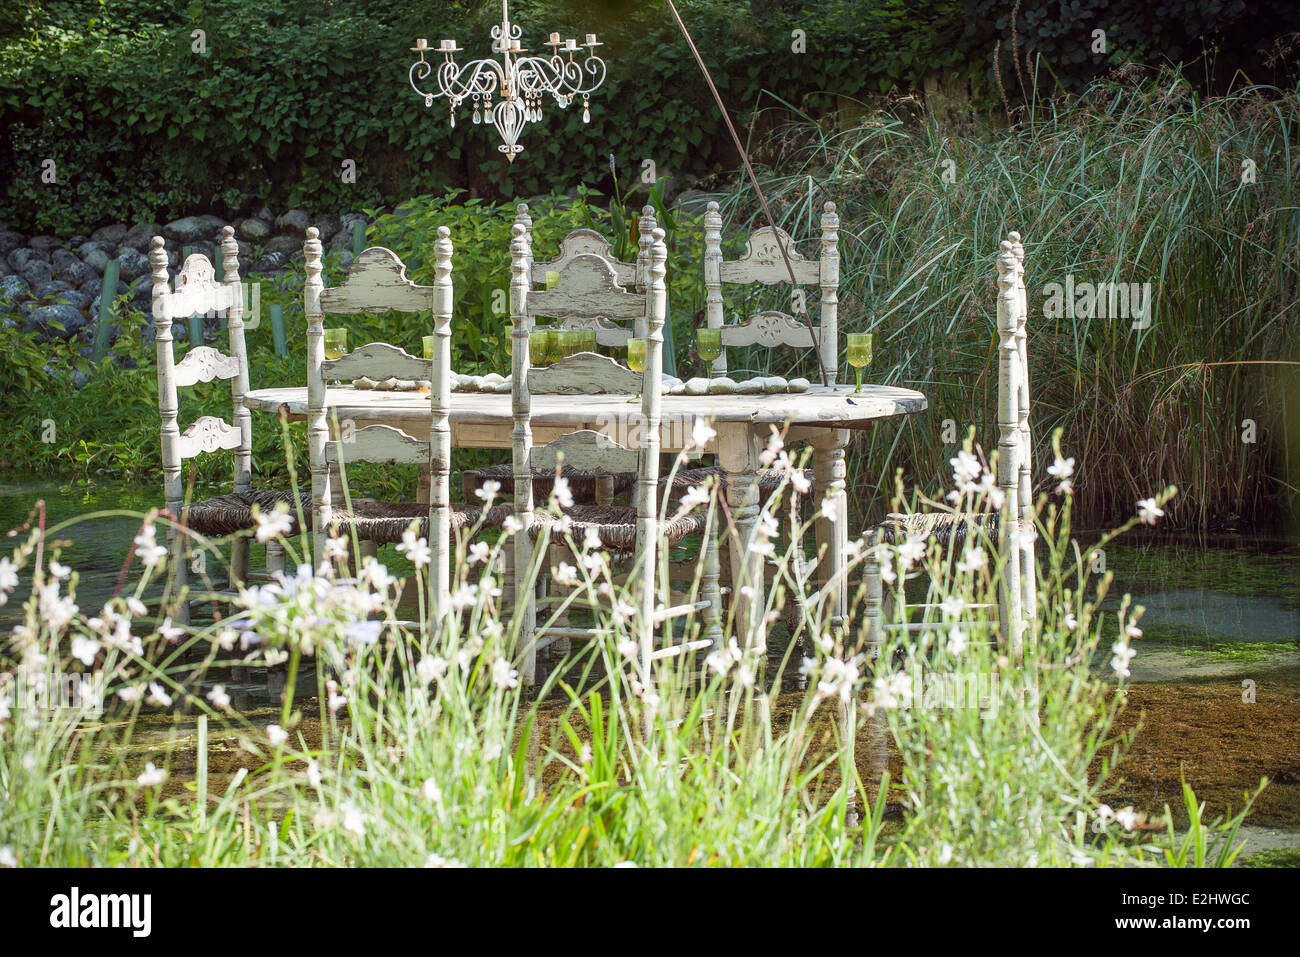 Ornate table and chairs floating on pond - Stock Image